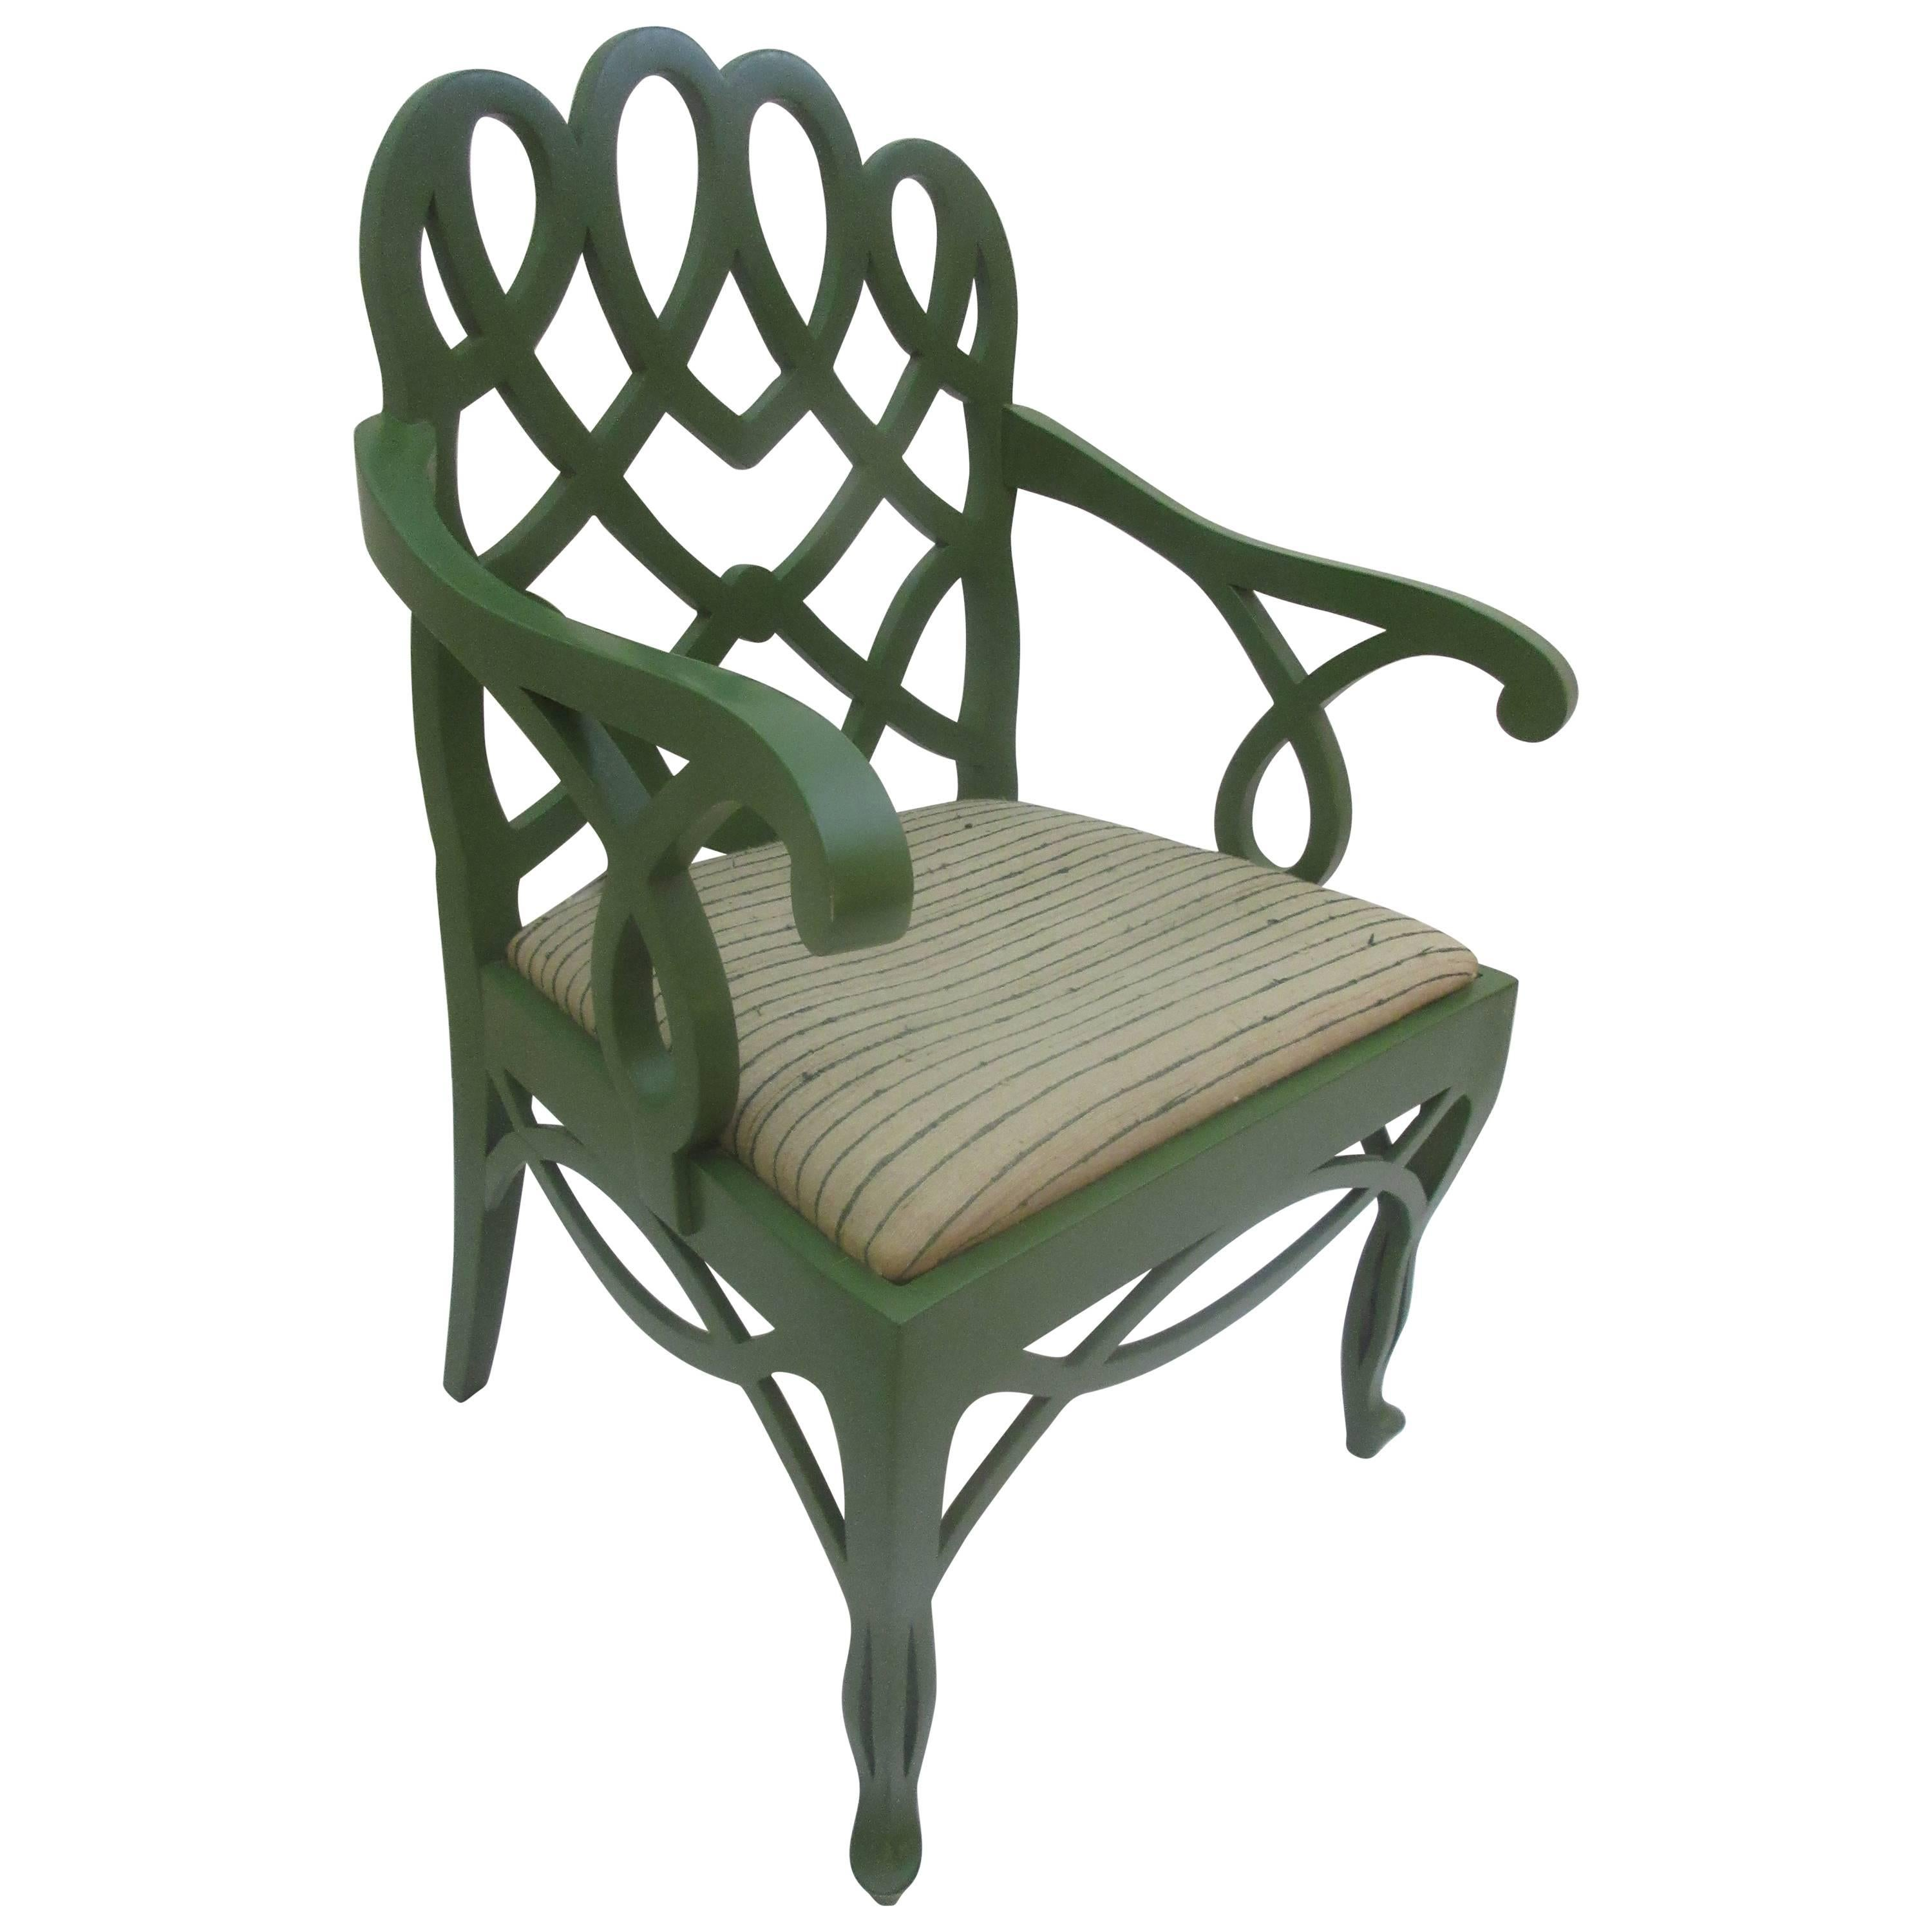 Frances Elkins Loop Chair In Original Green Lacquer And Fabric 1